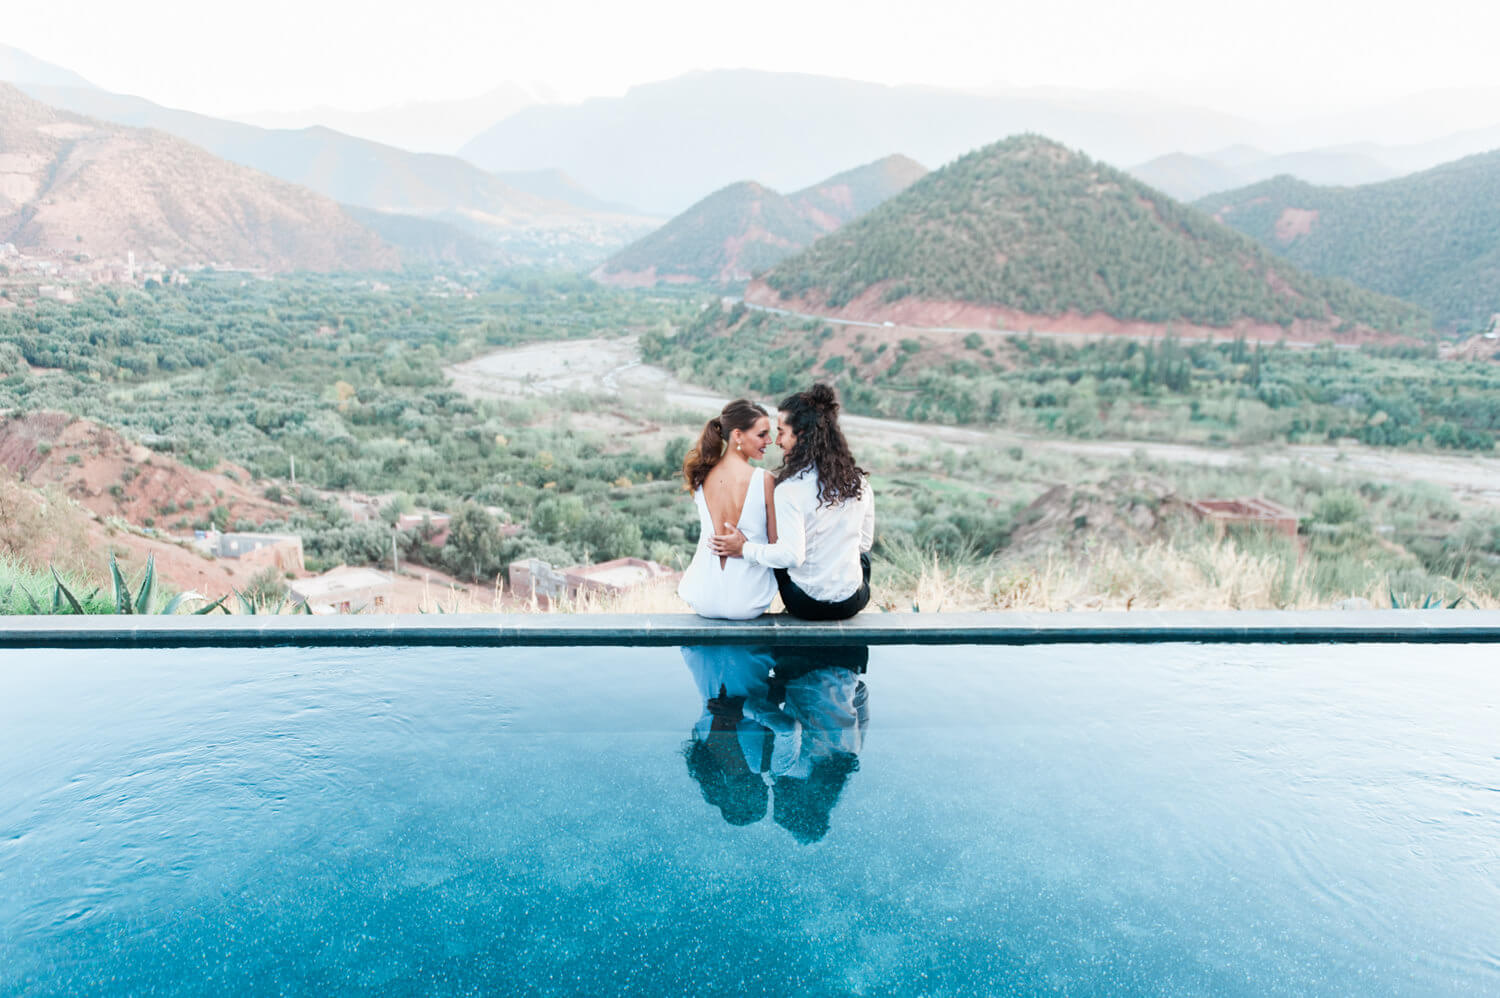 A bride and groom at Marrakech's Kasbah bab Ourika looking out over the Atlas Mountains in Morocco, captured by destination wedding photographer Wit Photography